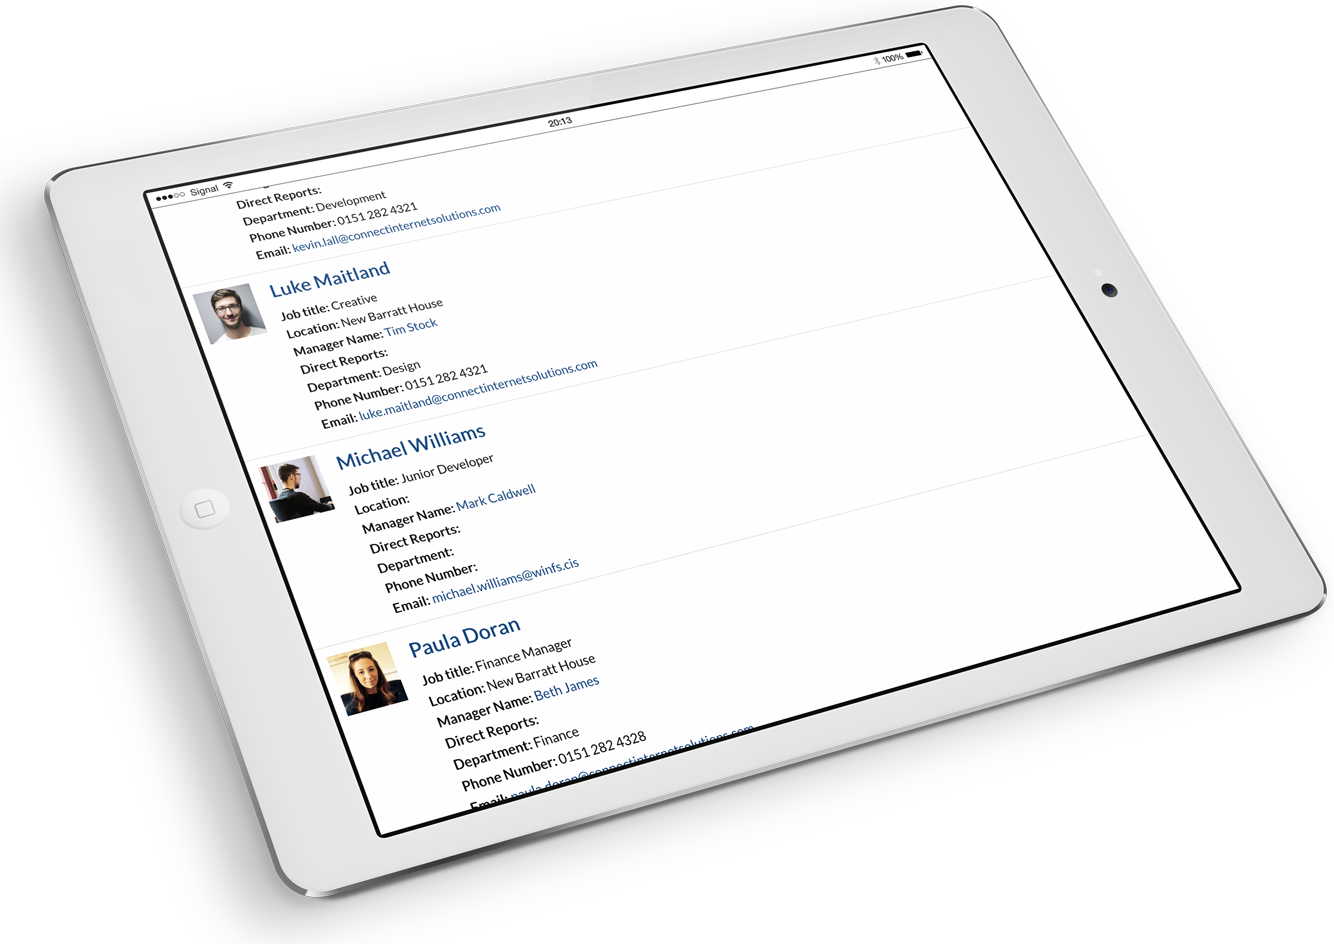 Staff Directory from Hivetalk affordable intranet displayed on a tablet